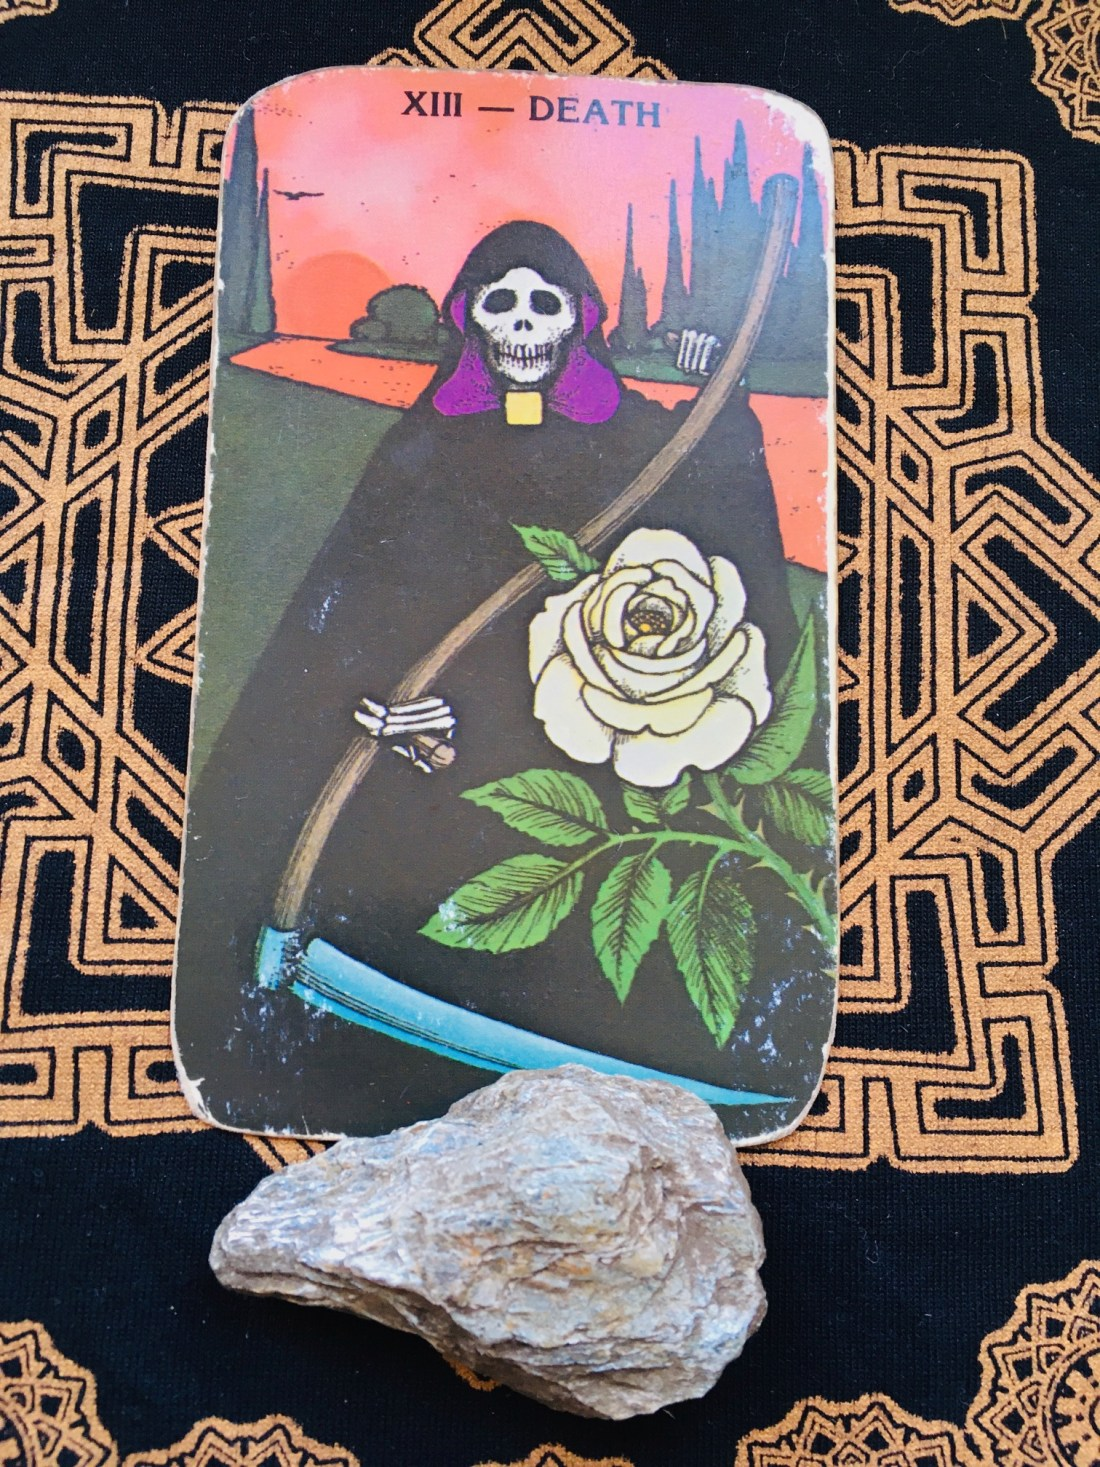 Death Tarot card means change and to let go.